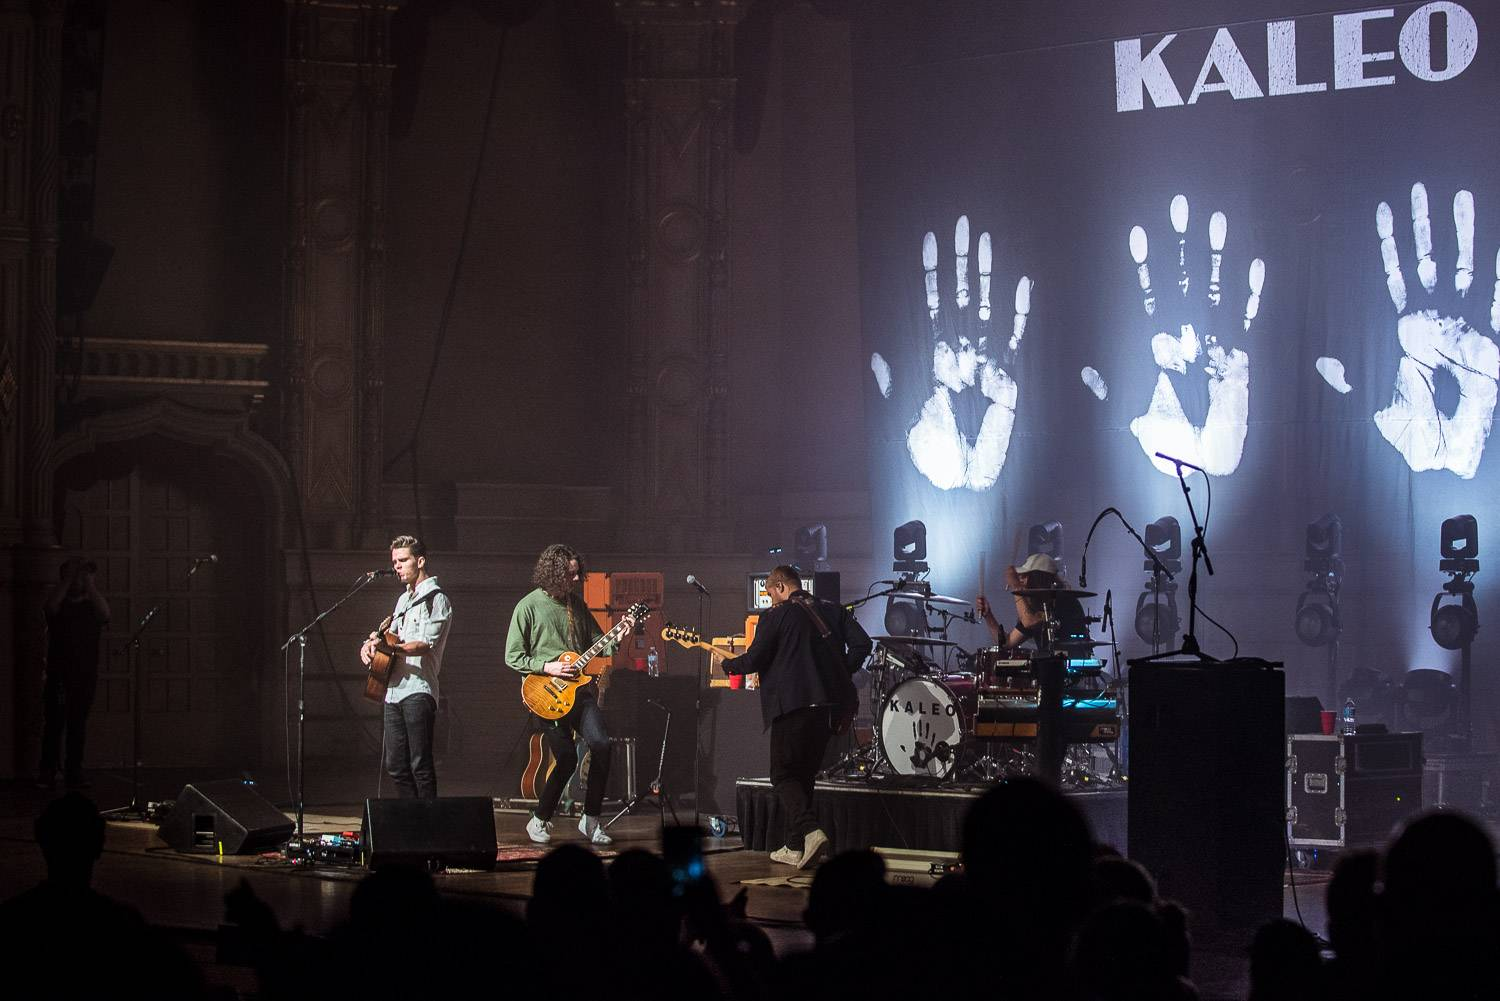 Kaleo at the Orpheum Theater, Vancouver, Apr. 4 2017. Pavel Boiko photo.